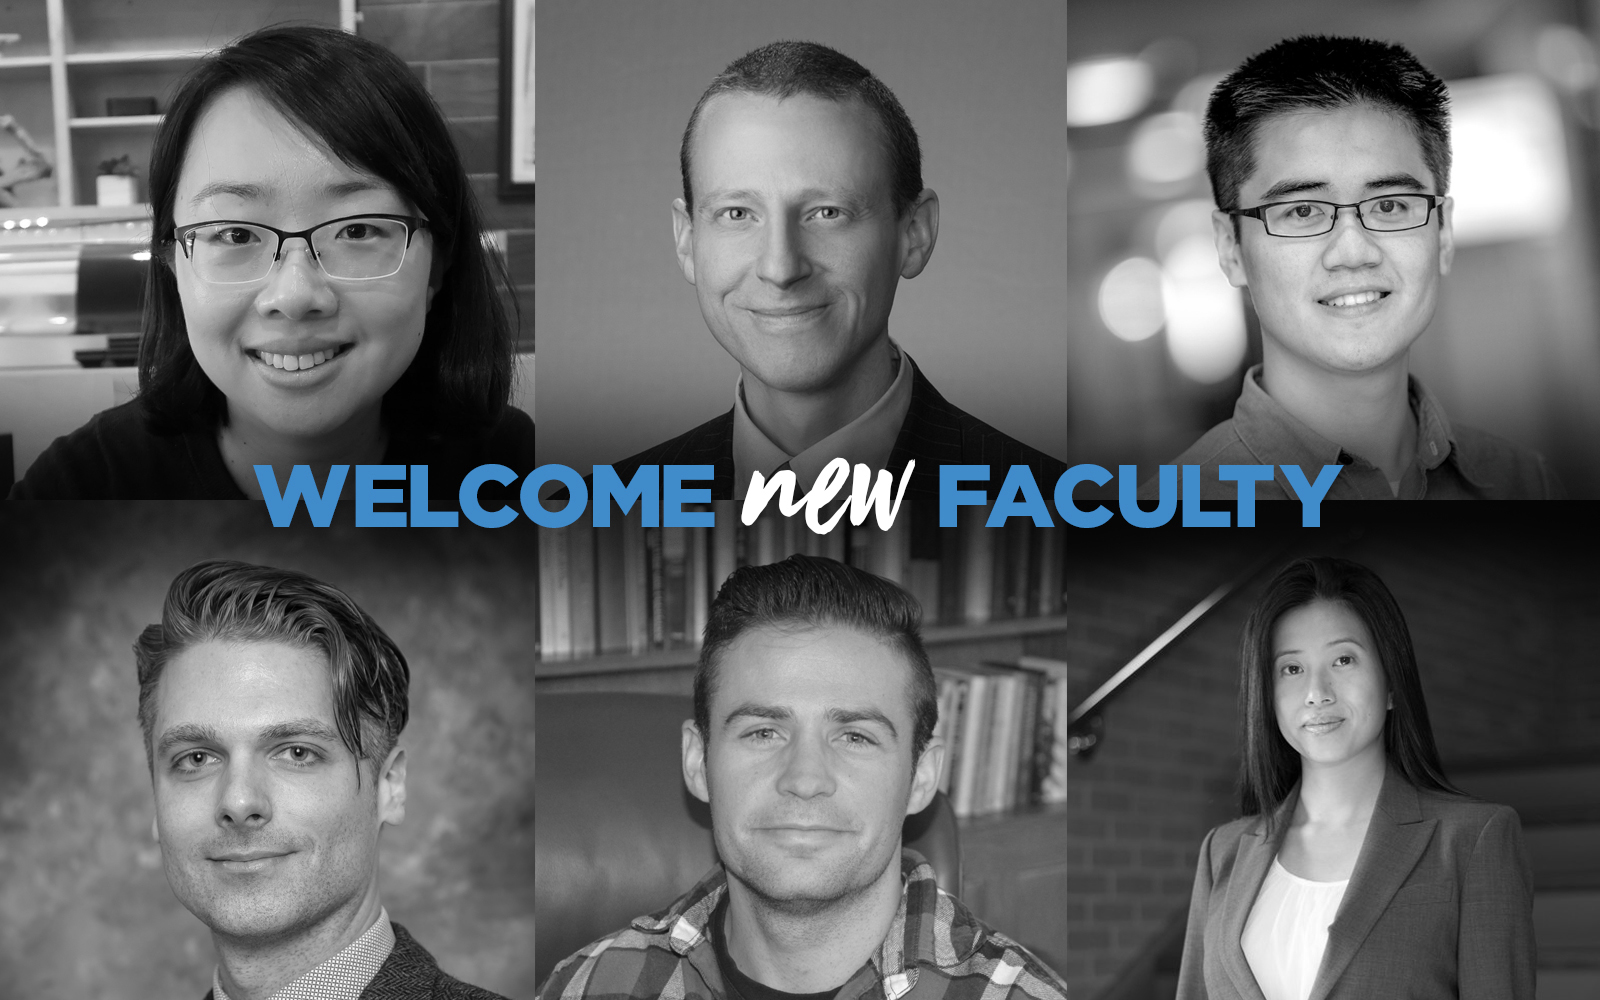 COmposite Image of new faculty members, with a welcome message in the middle